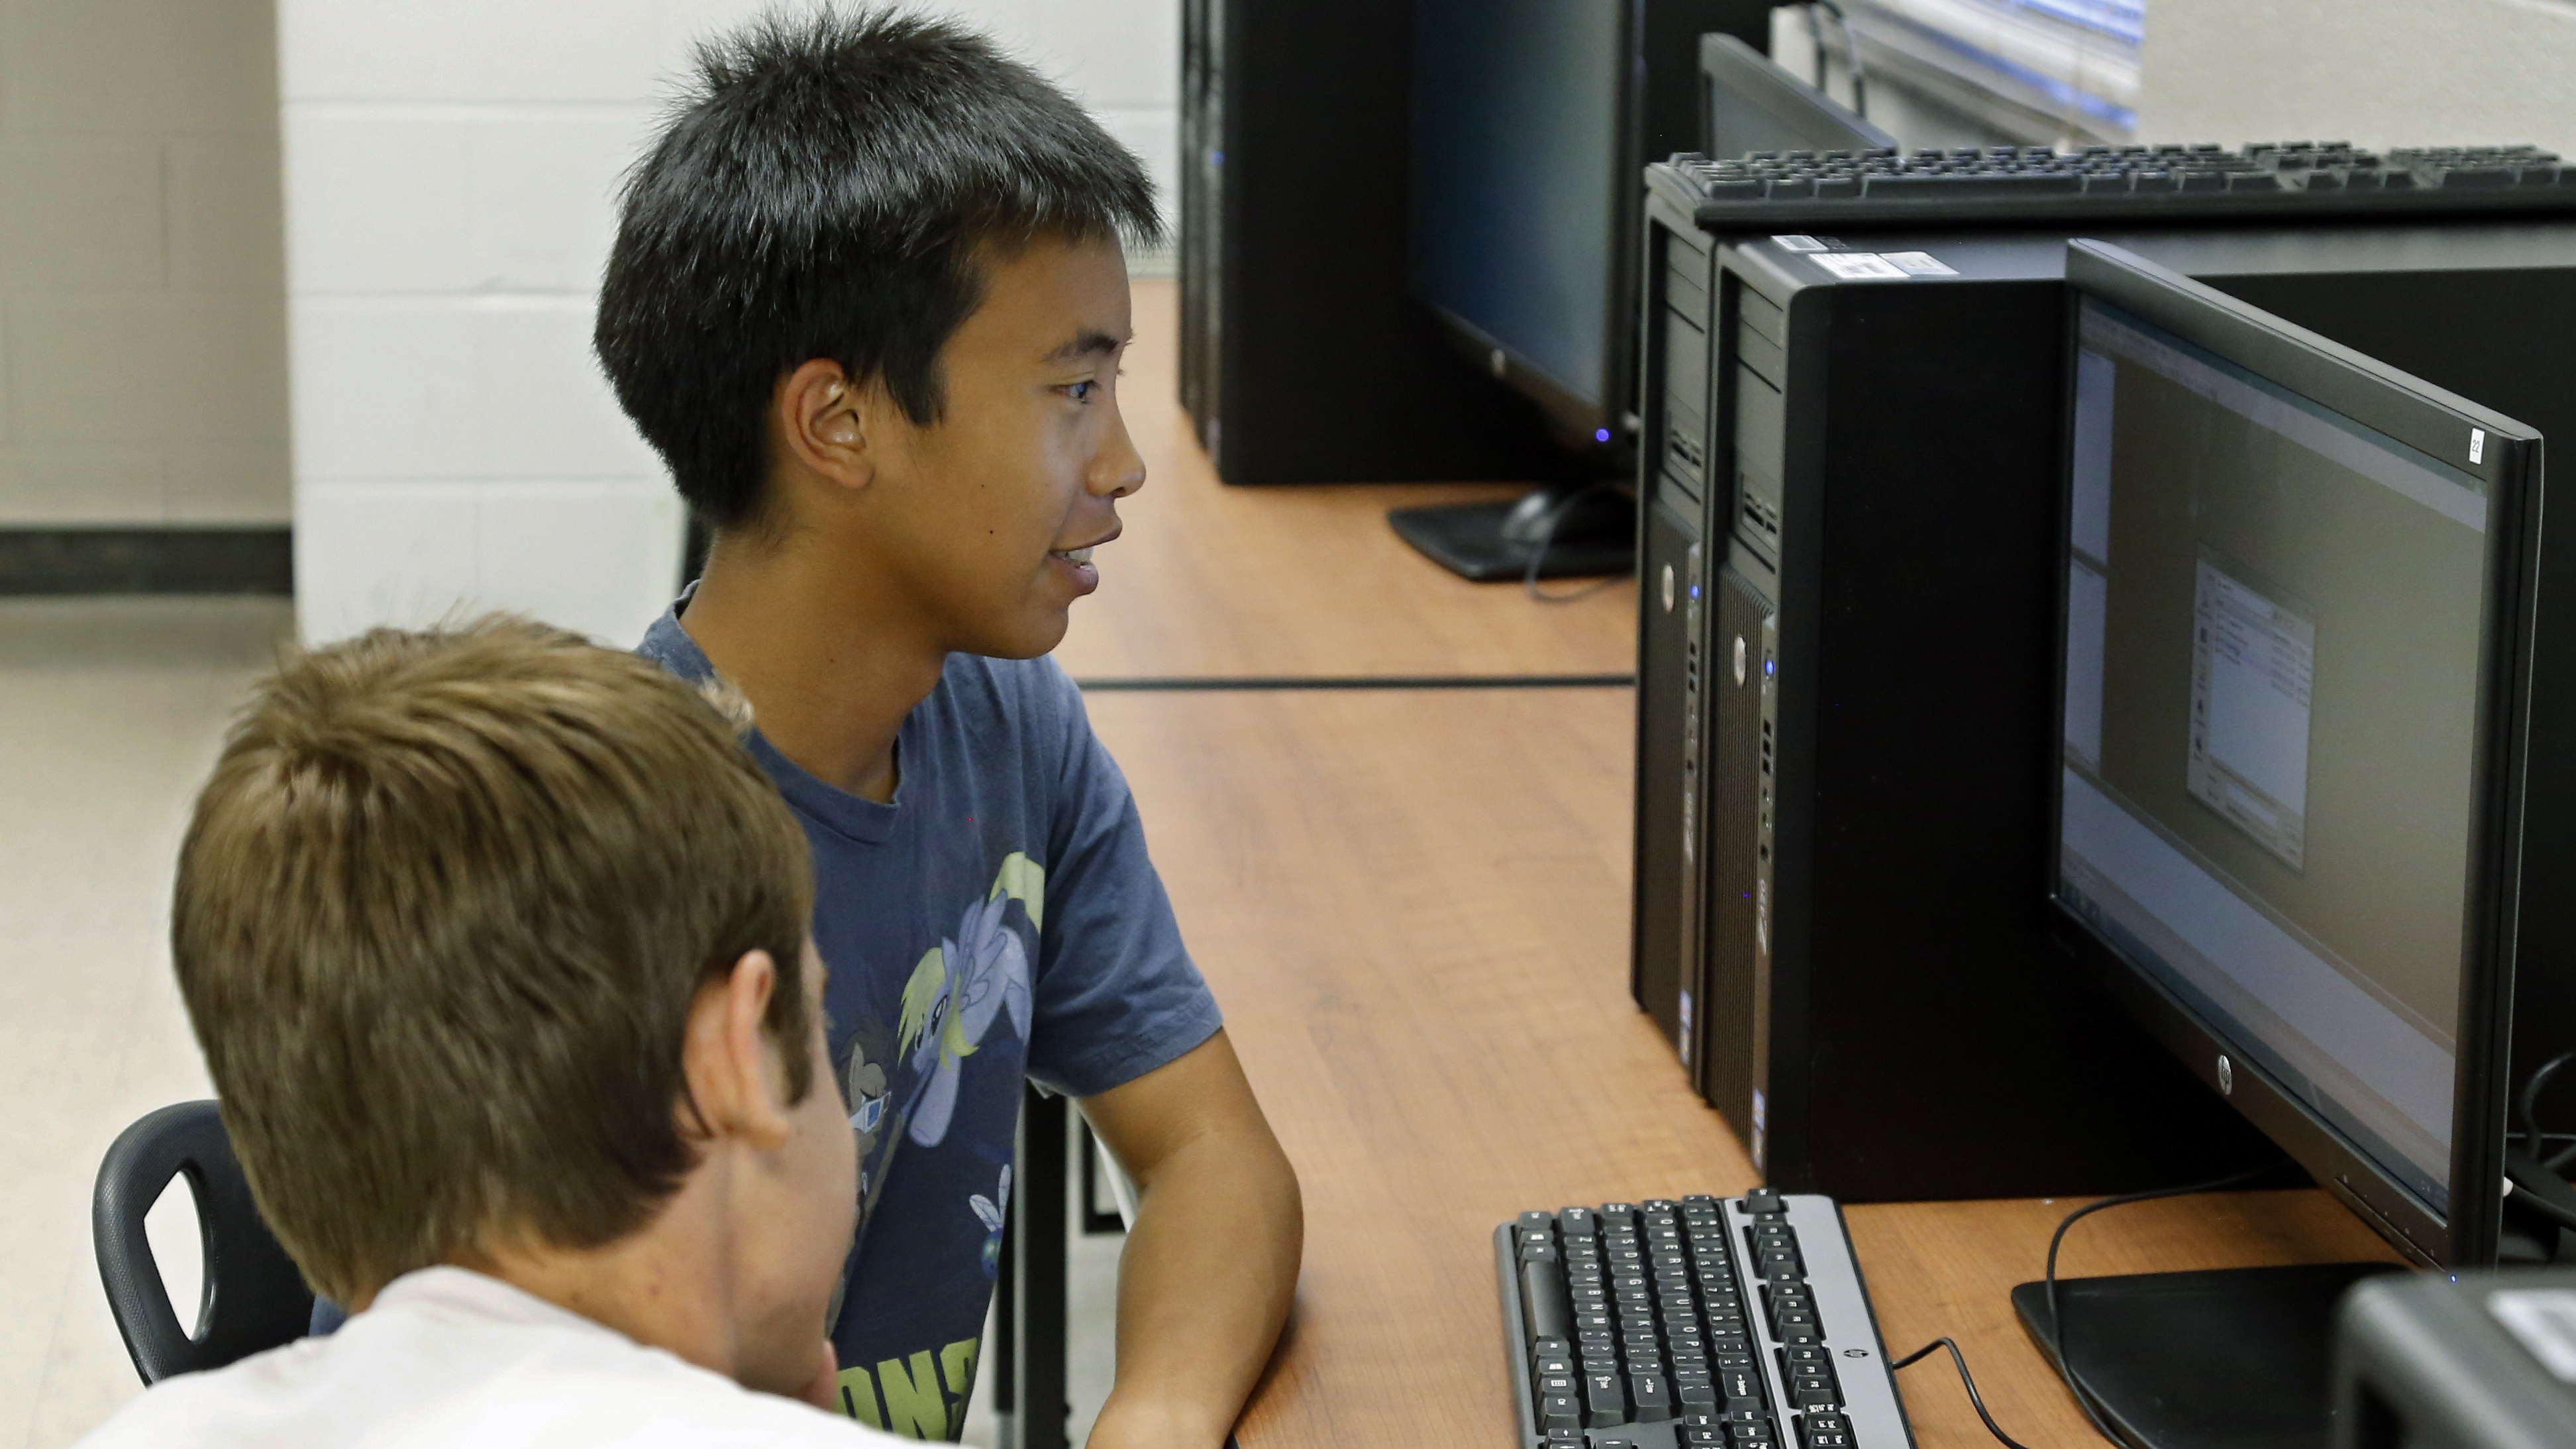 A Push To Boost Computer Science Learning, Even At An Early Age